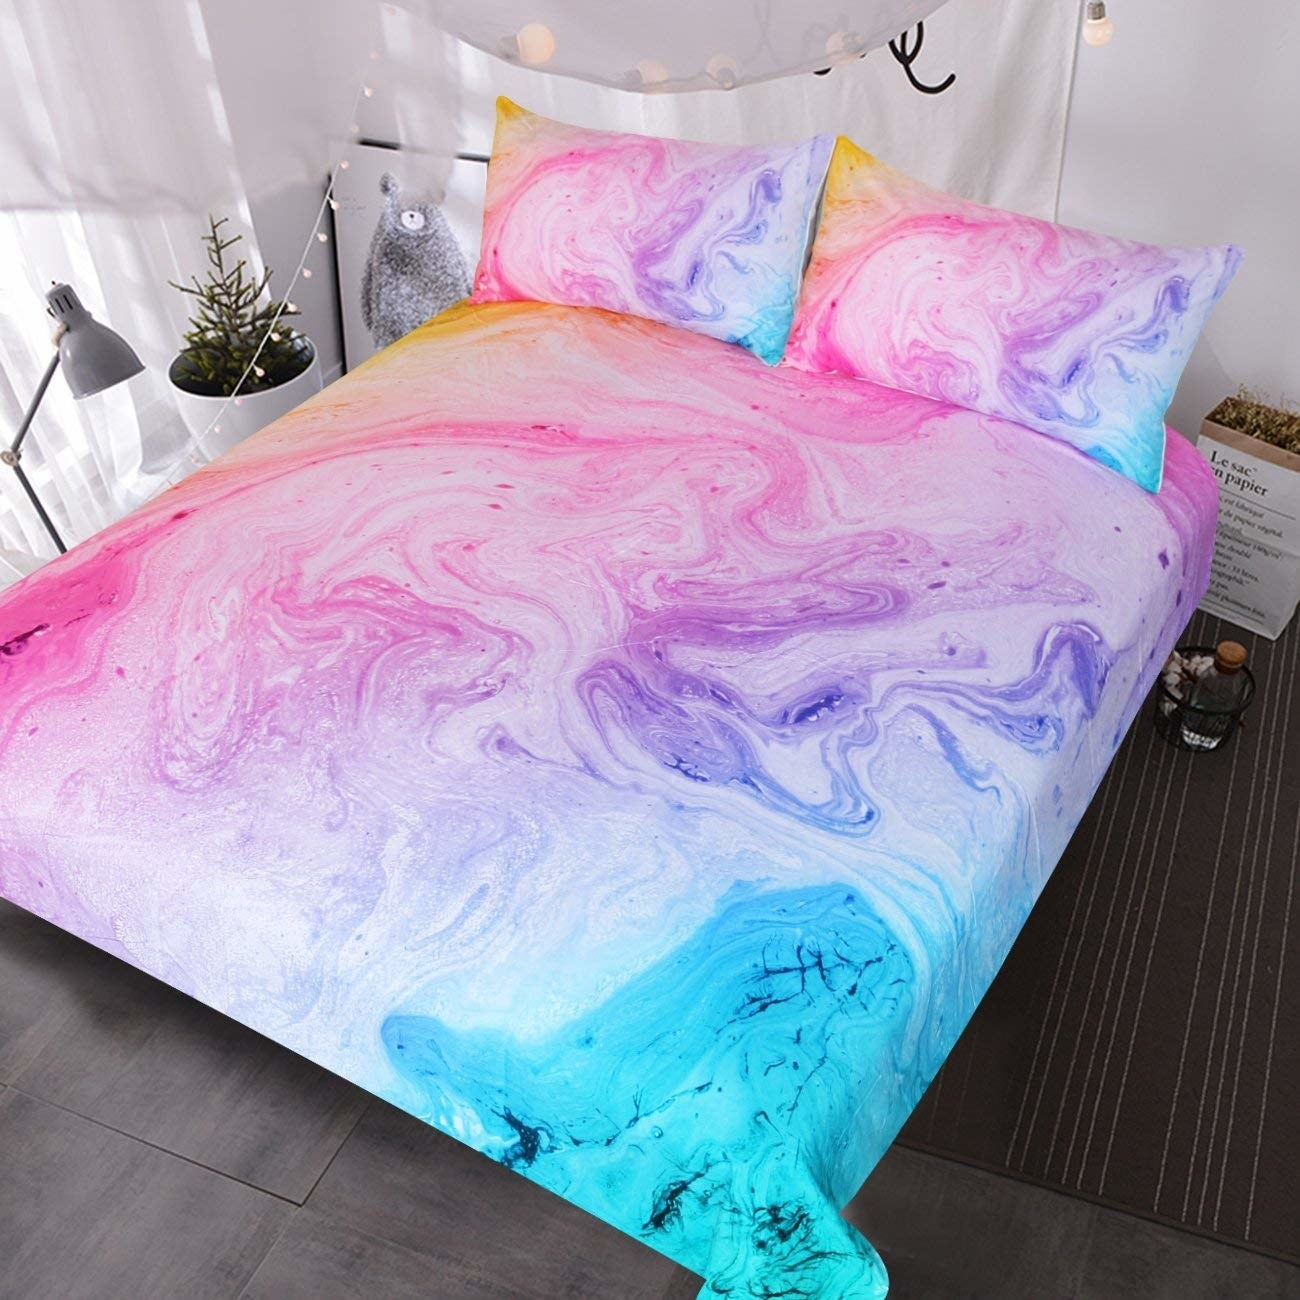 Neon marbled pattern on duvet cover and pillow cases